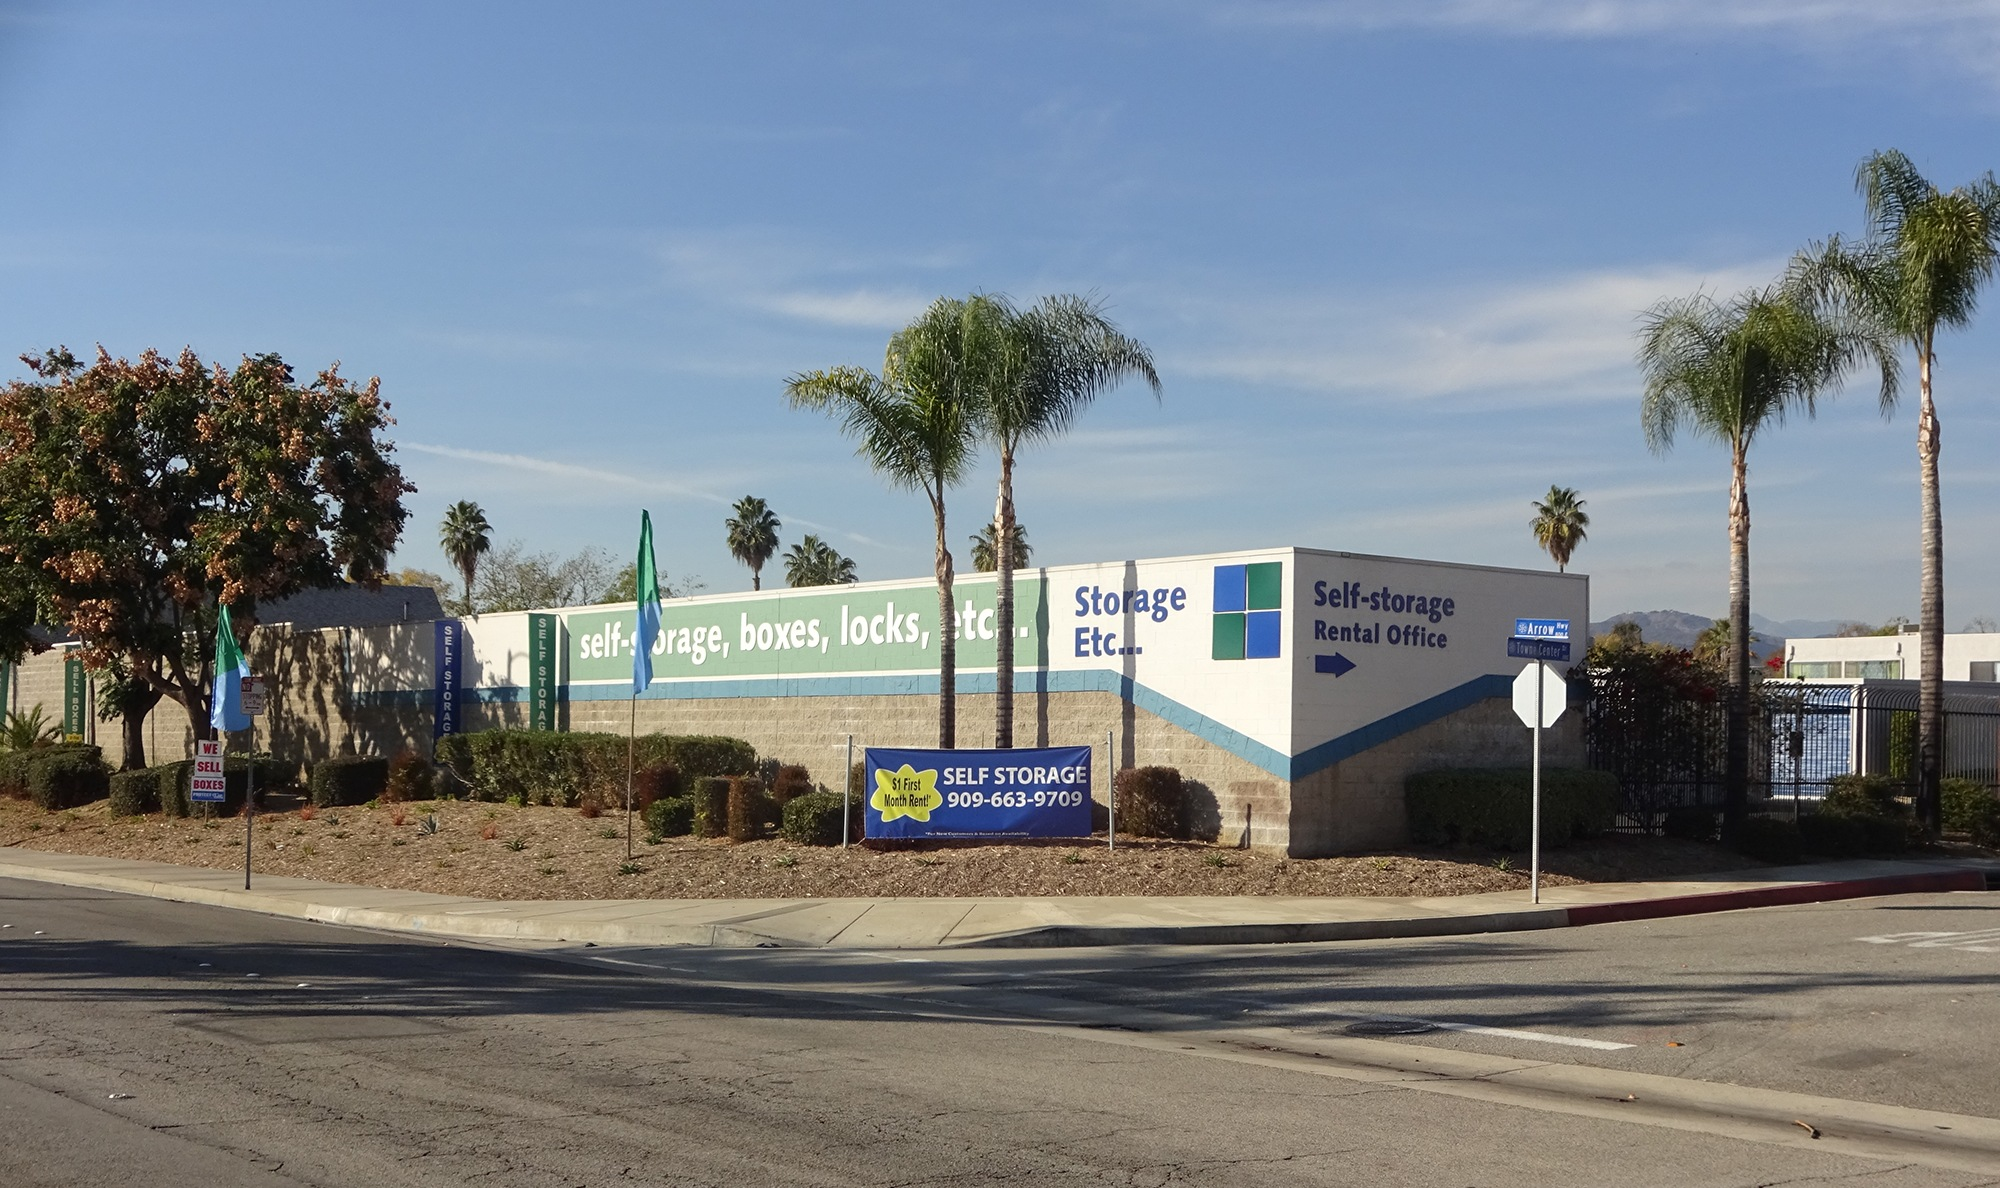 Self Storage Rental Office at Storage Etc... Pomona